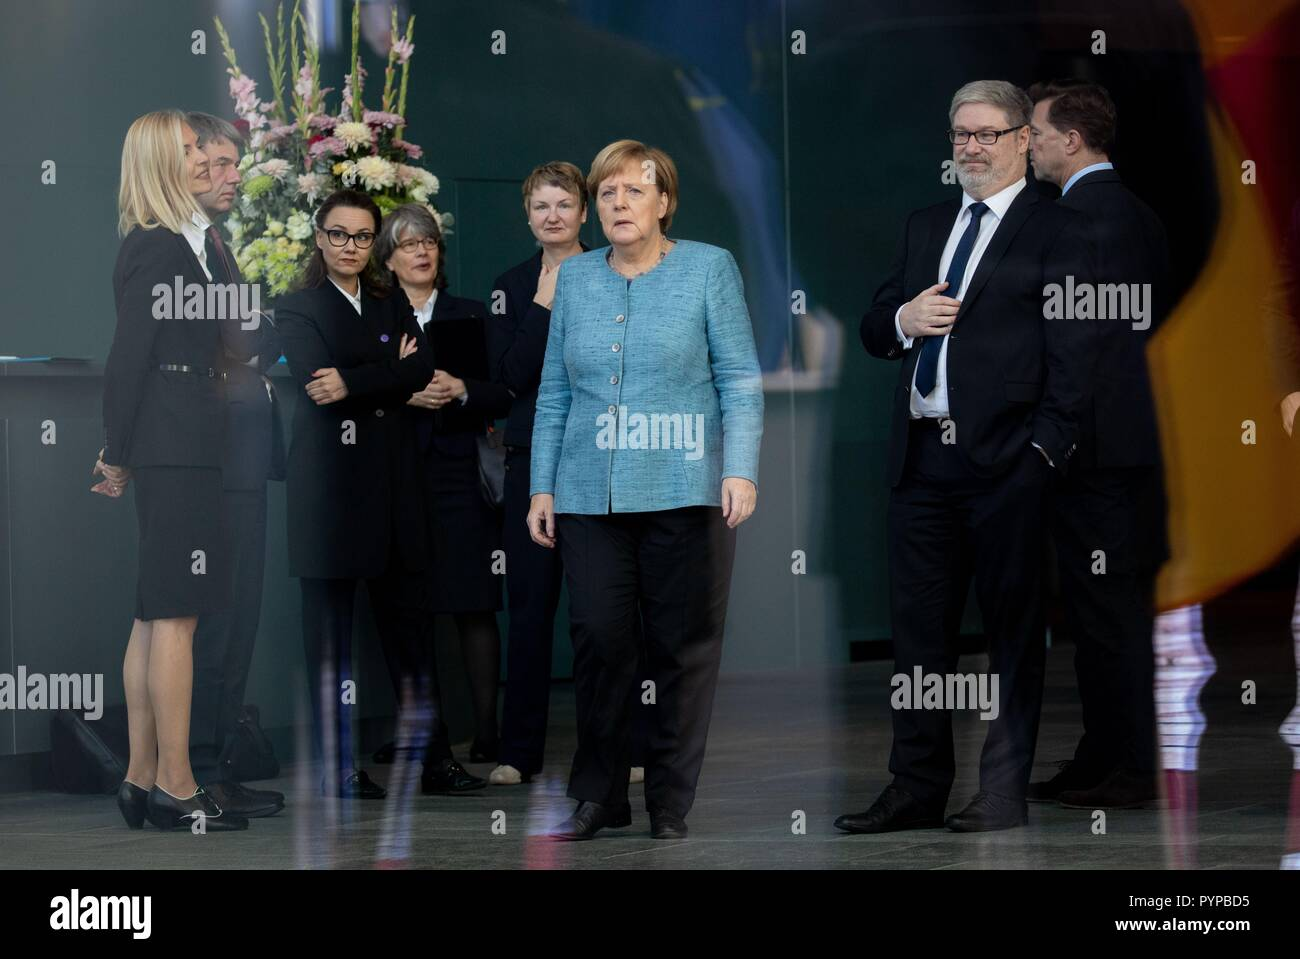 30 October 2018, Berlin: Chancellor Angela Merkel (CDU) is expecting the Prime Minister of the Democratic Federal Republic of Ethiopia before the Federal Chancellery at the beginning of the Africa Summit, alongside Michelle Müntefering (2nd from left, SPD), Minister of State at the Federal Foreign Office, Lars-Hendrik Röller, Head of the Economics and Finance Department at the Federal Chancellery, and Steffen Seibert (r), government spokesman. This is where eleven heads of state and government come to Berlin for the summit meeting. It is about an initiative for more private investment in Afric - Stock Image